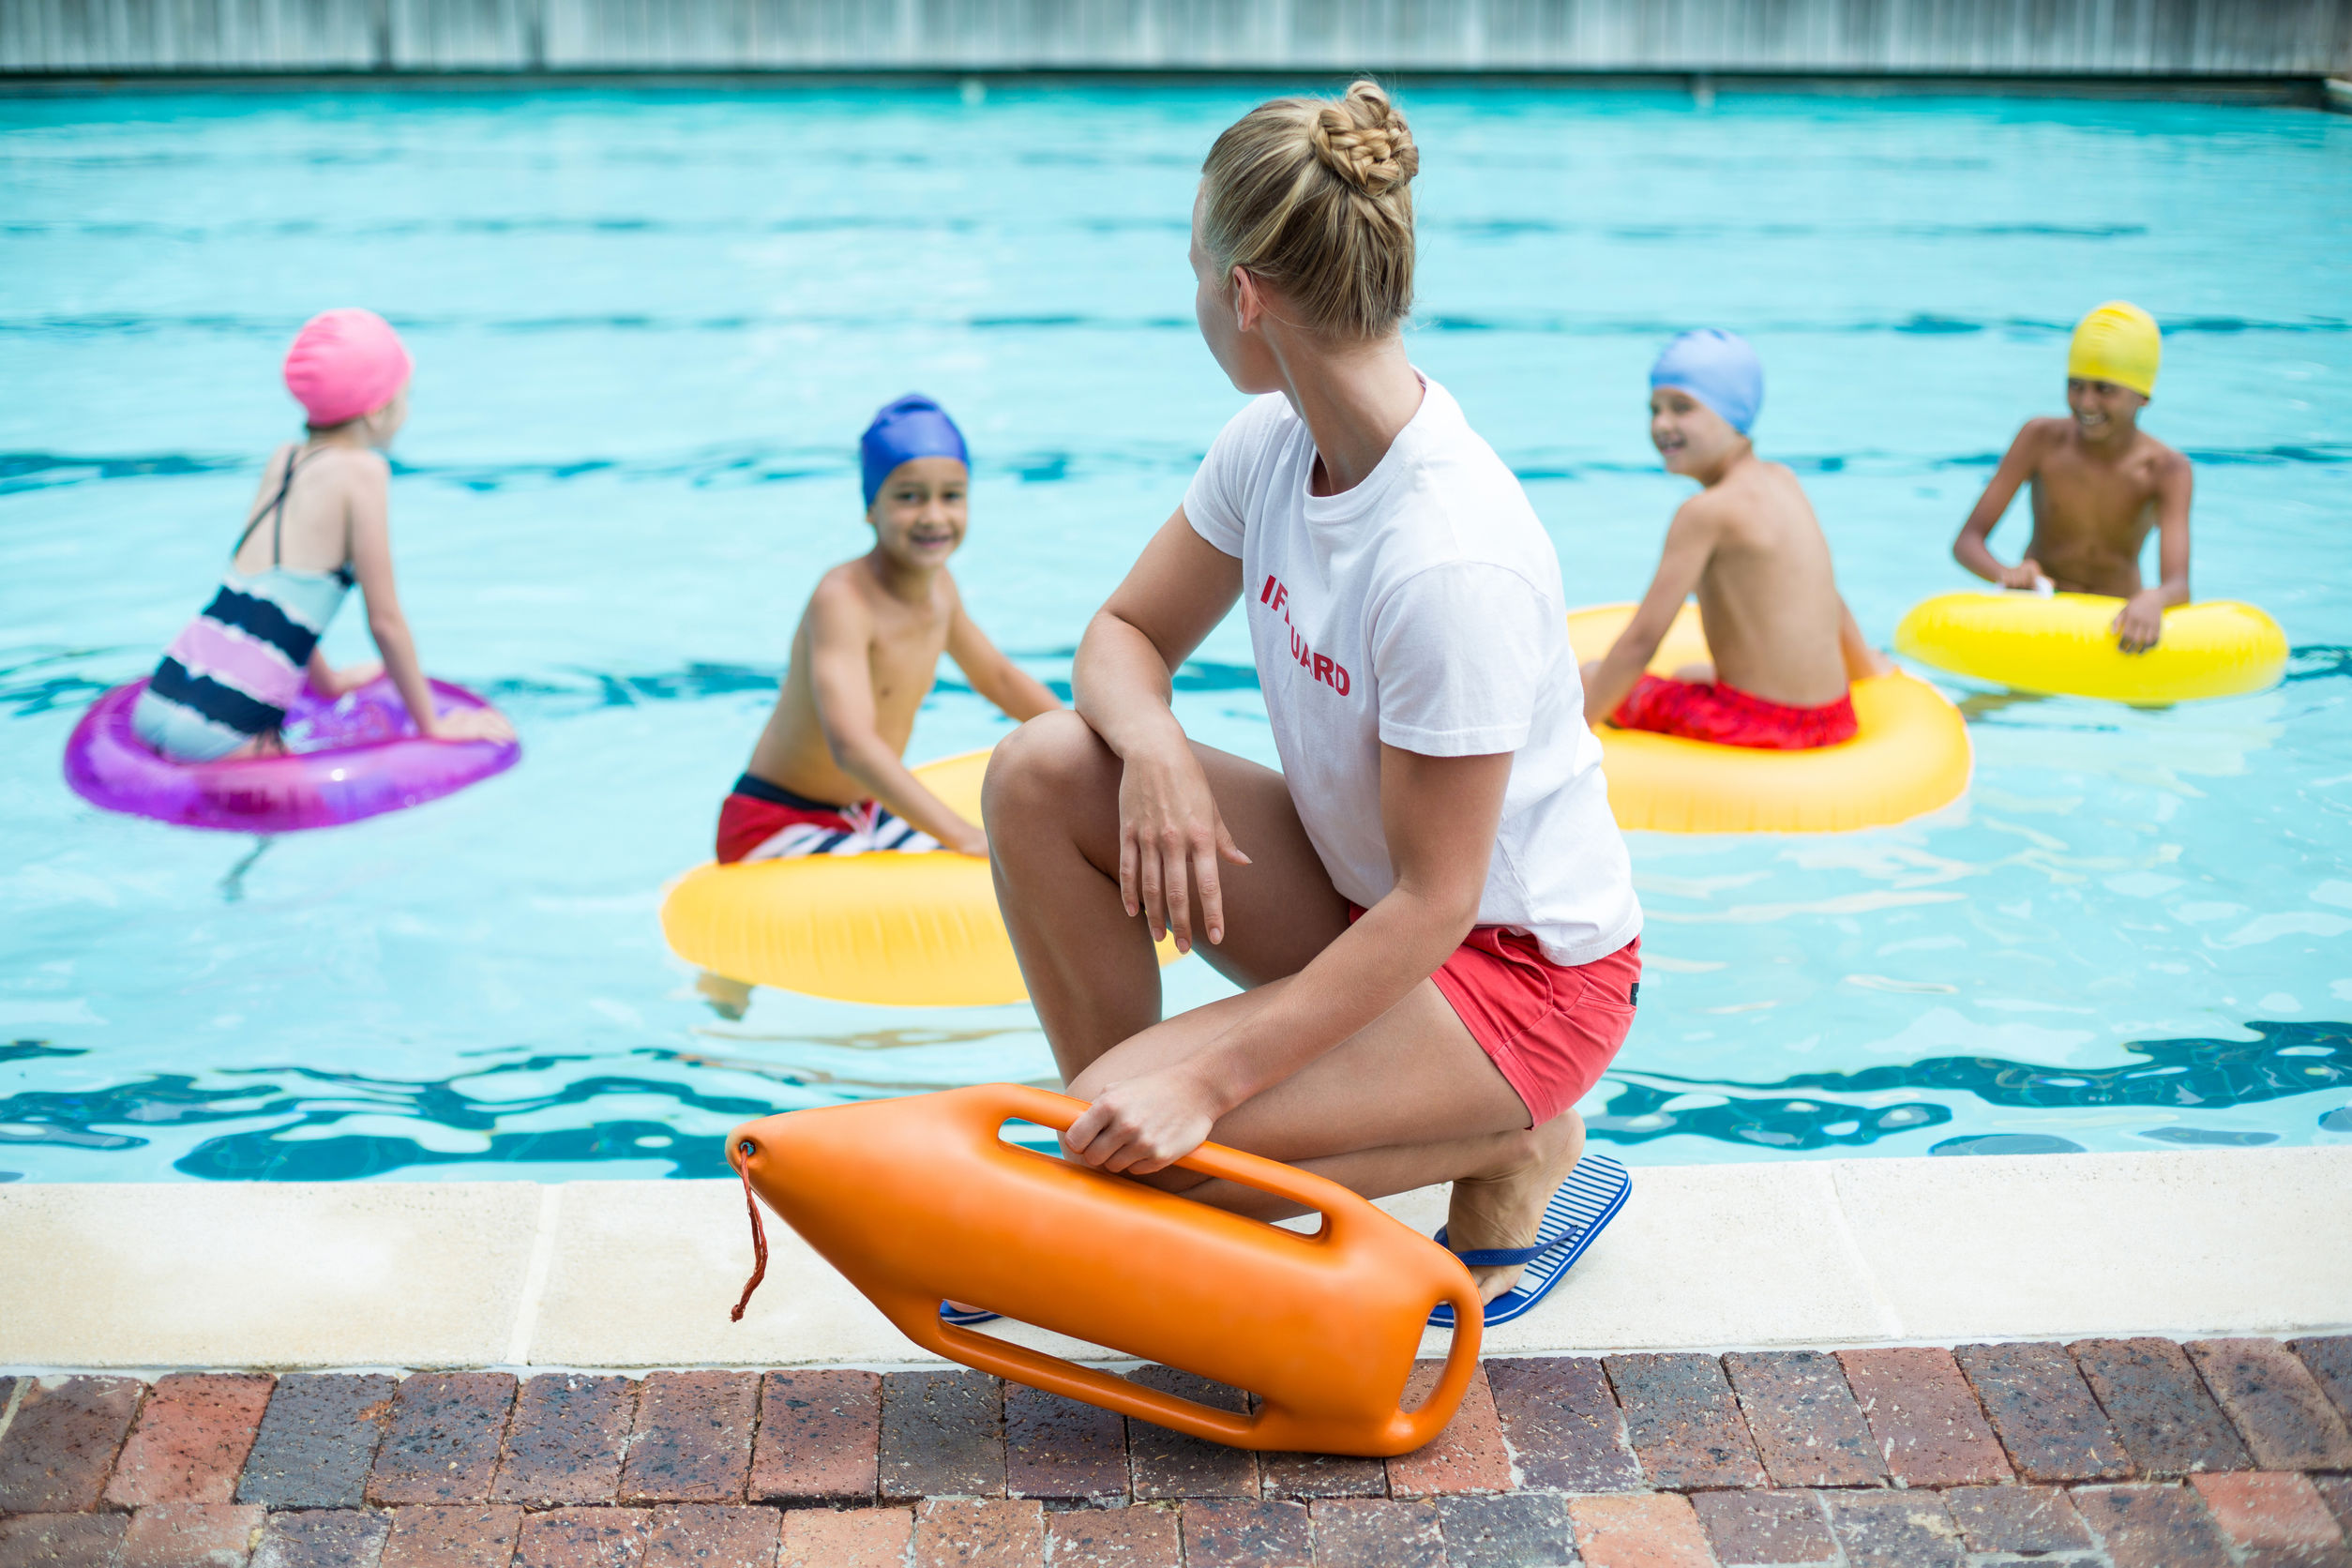 Female lifeguard holding rescue can while children swimming in pool